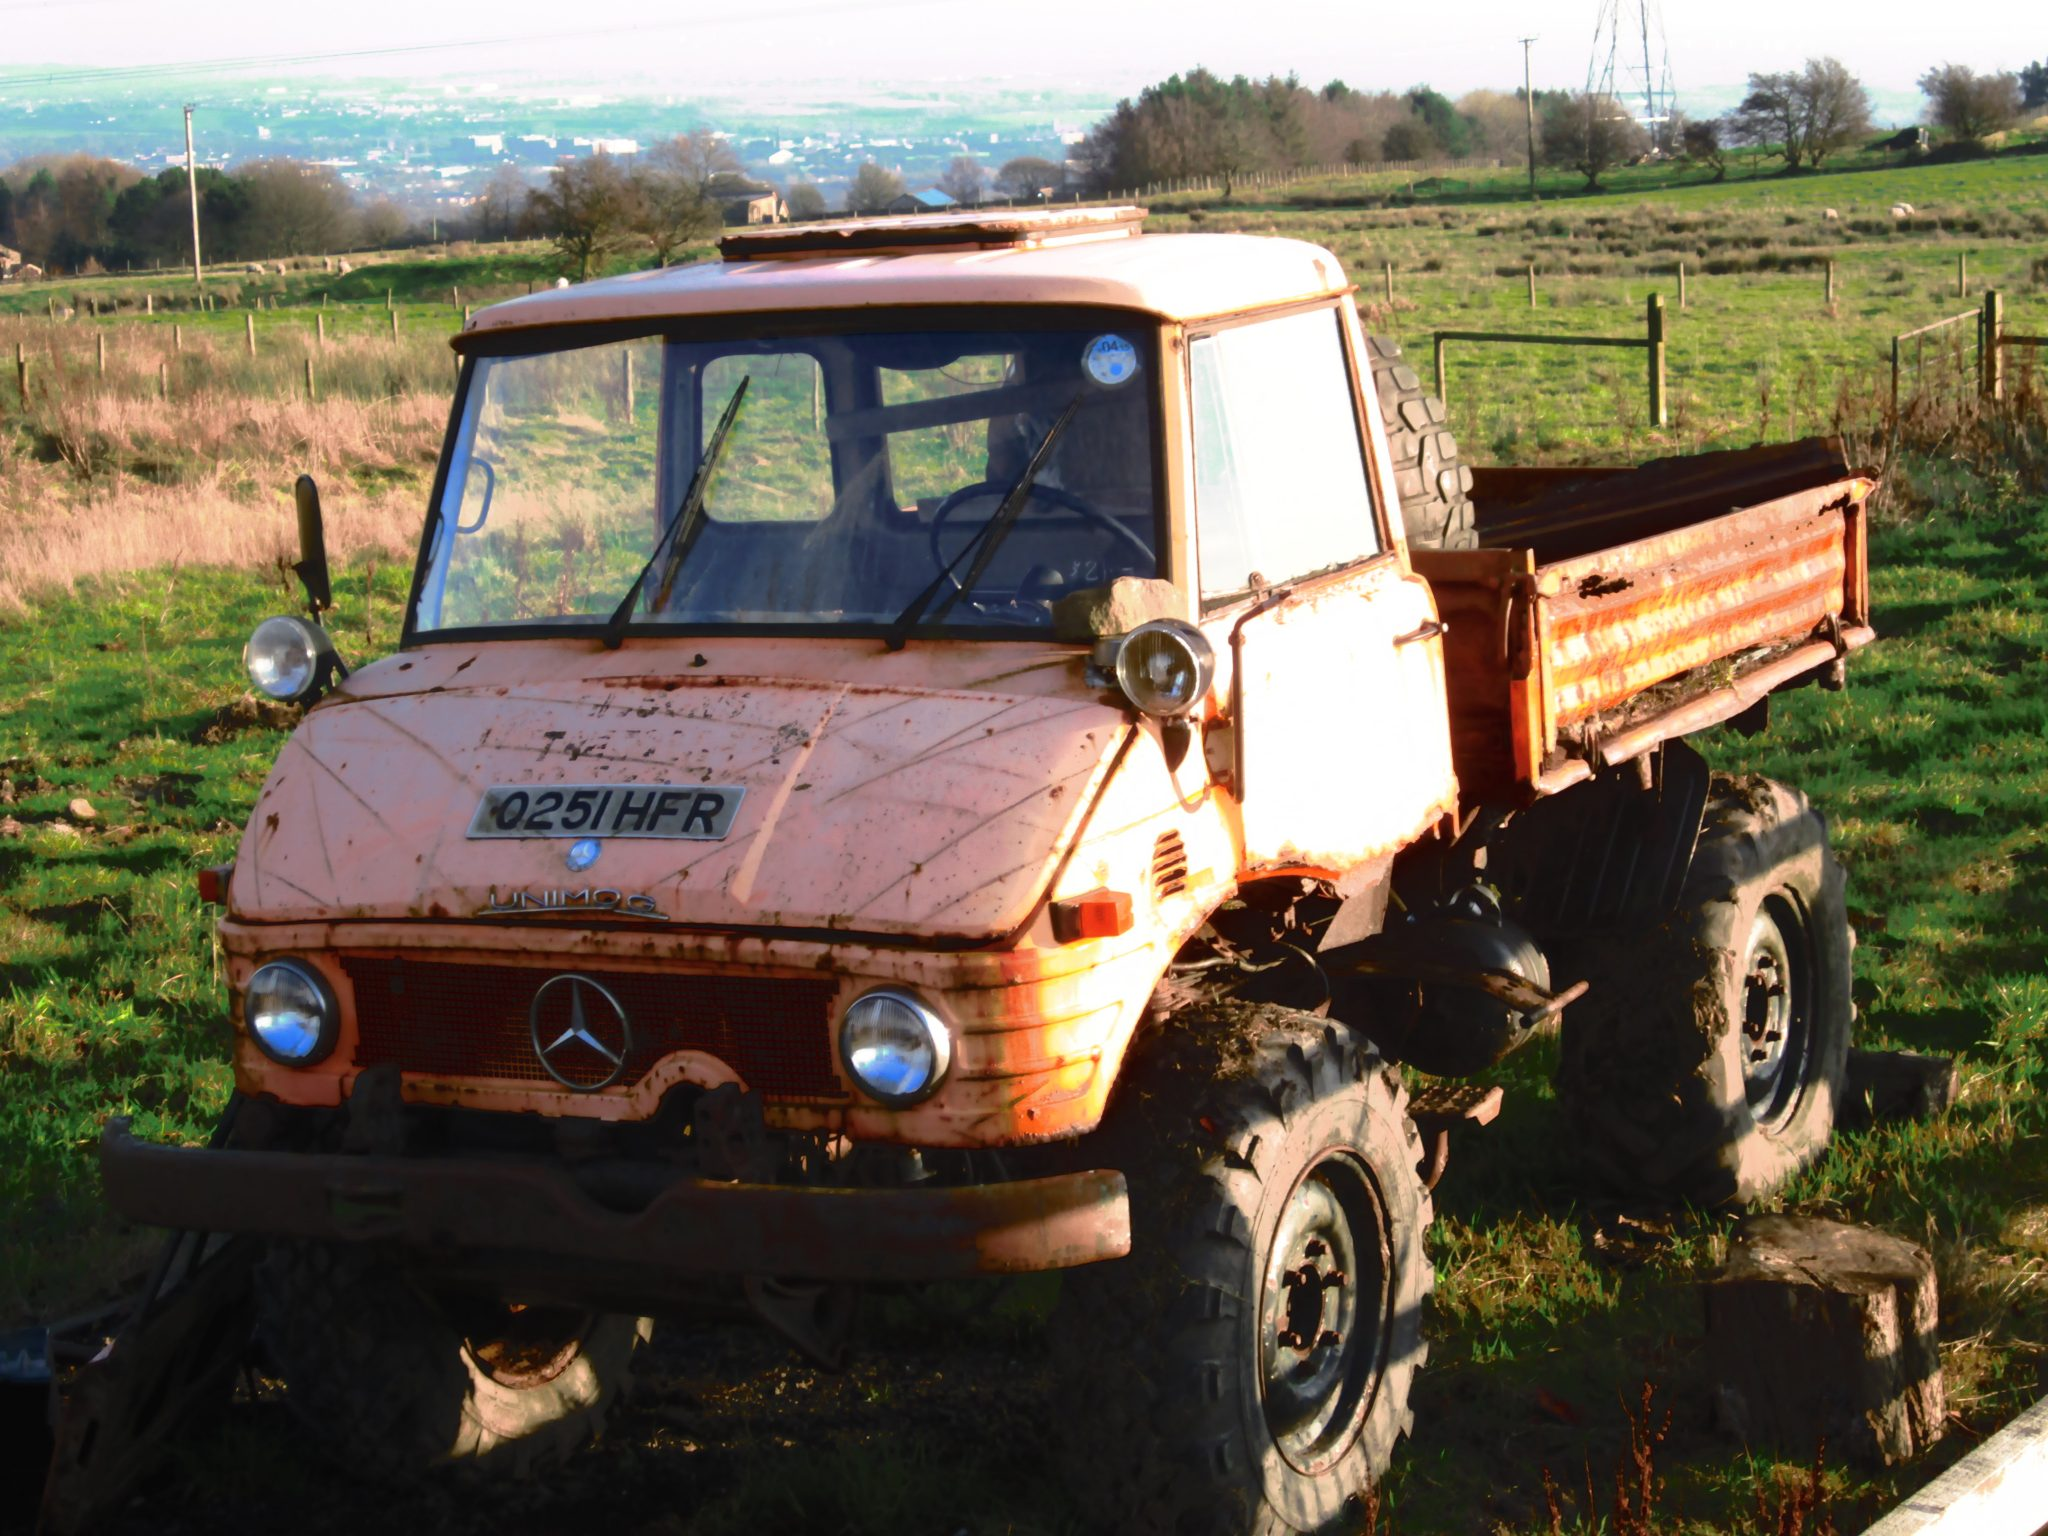 MERCEDES UNIMOG 406 AGRICULTURAL TRACTOR FOR RESTORATION